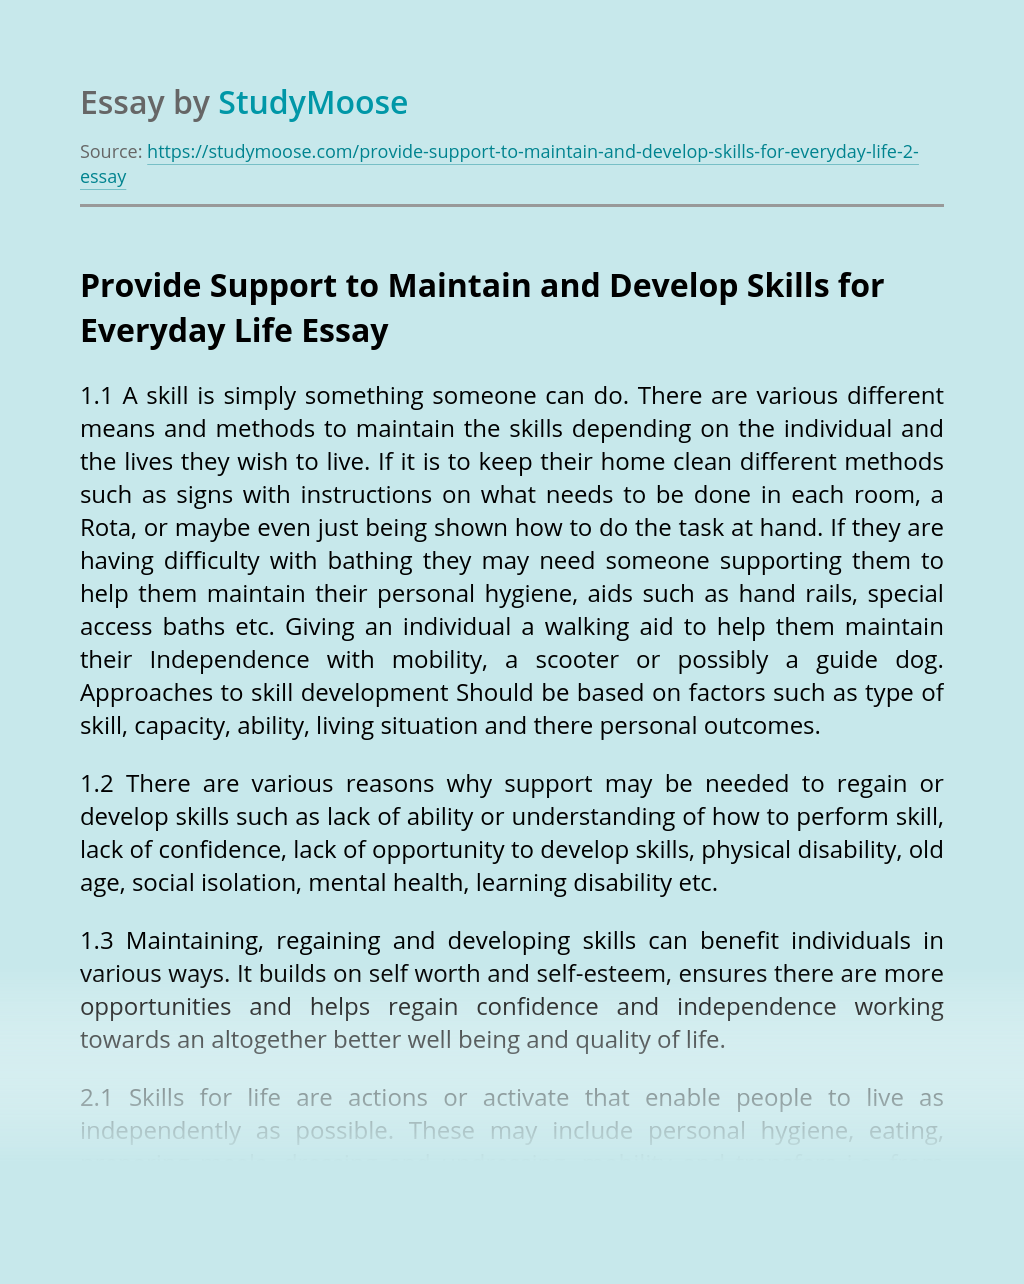 Provide Support to Maintain and Develop Skills for Everyday Life